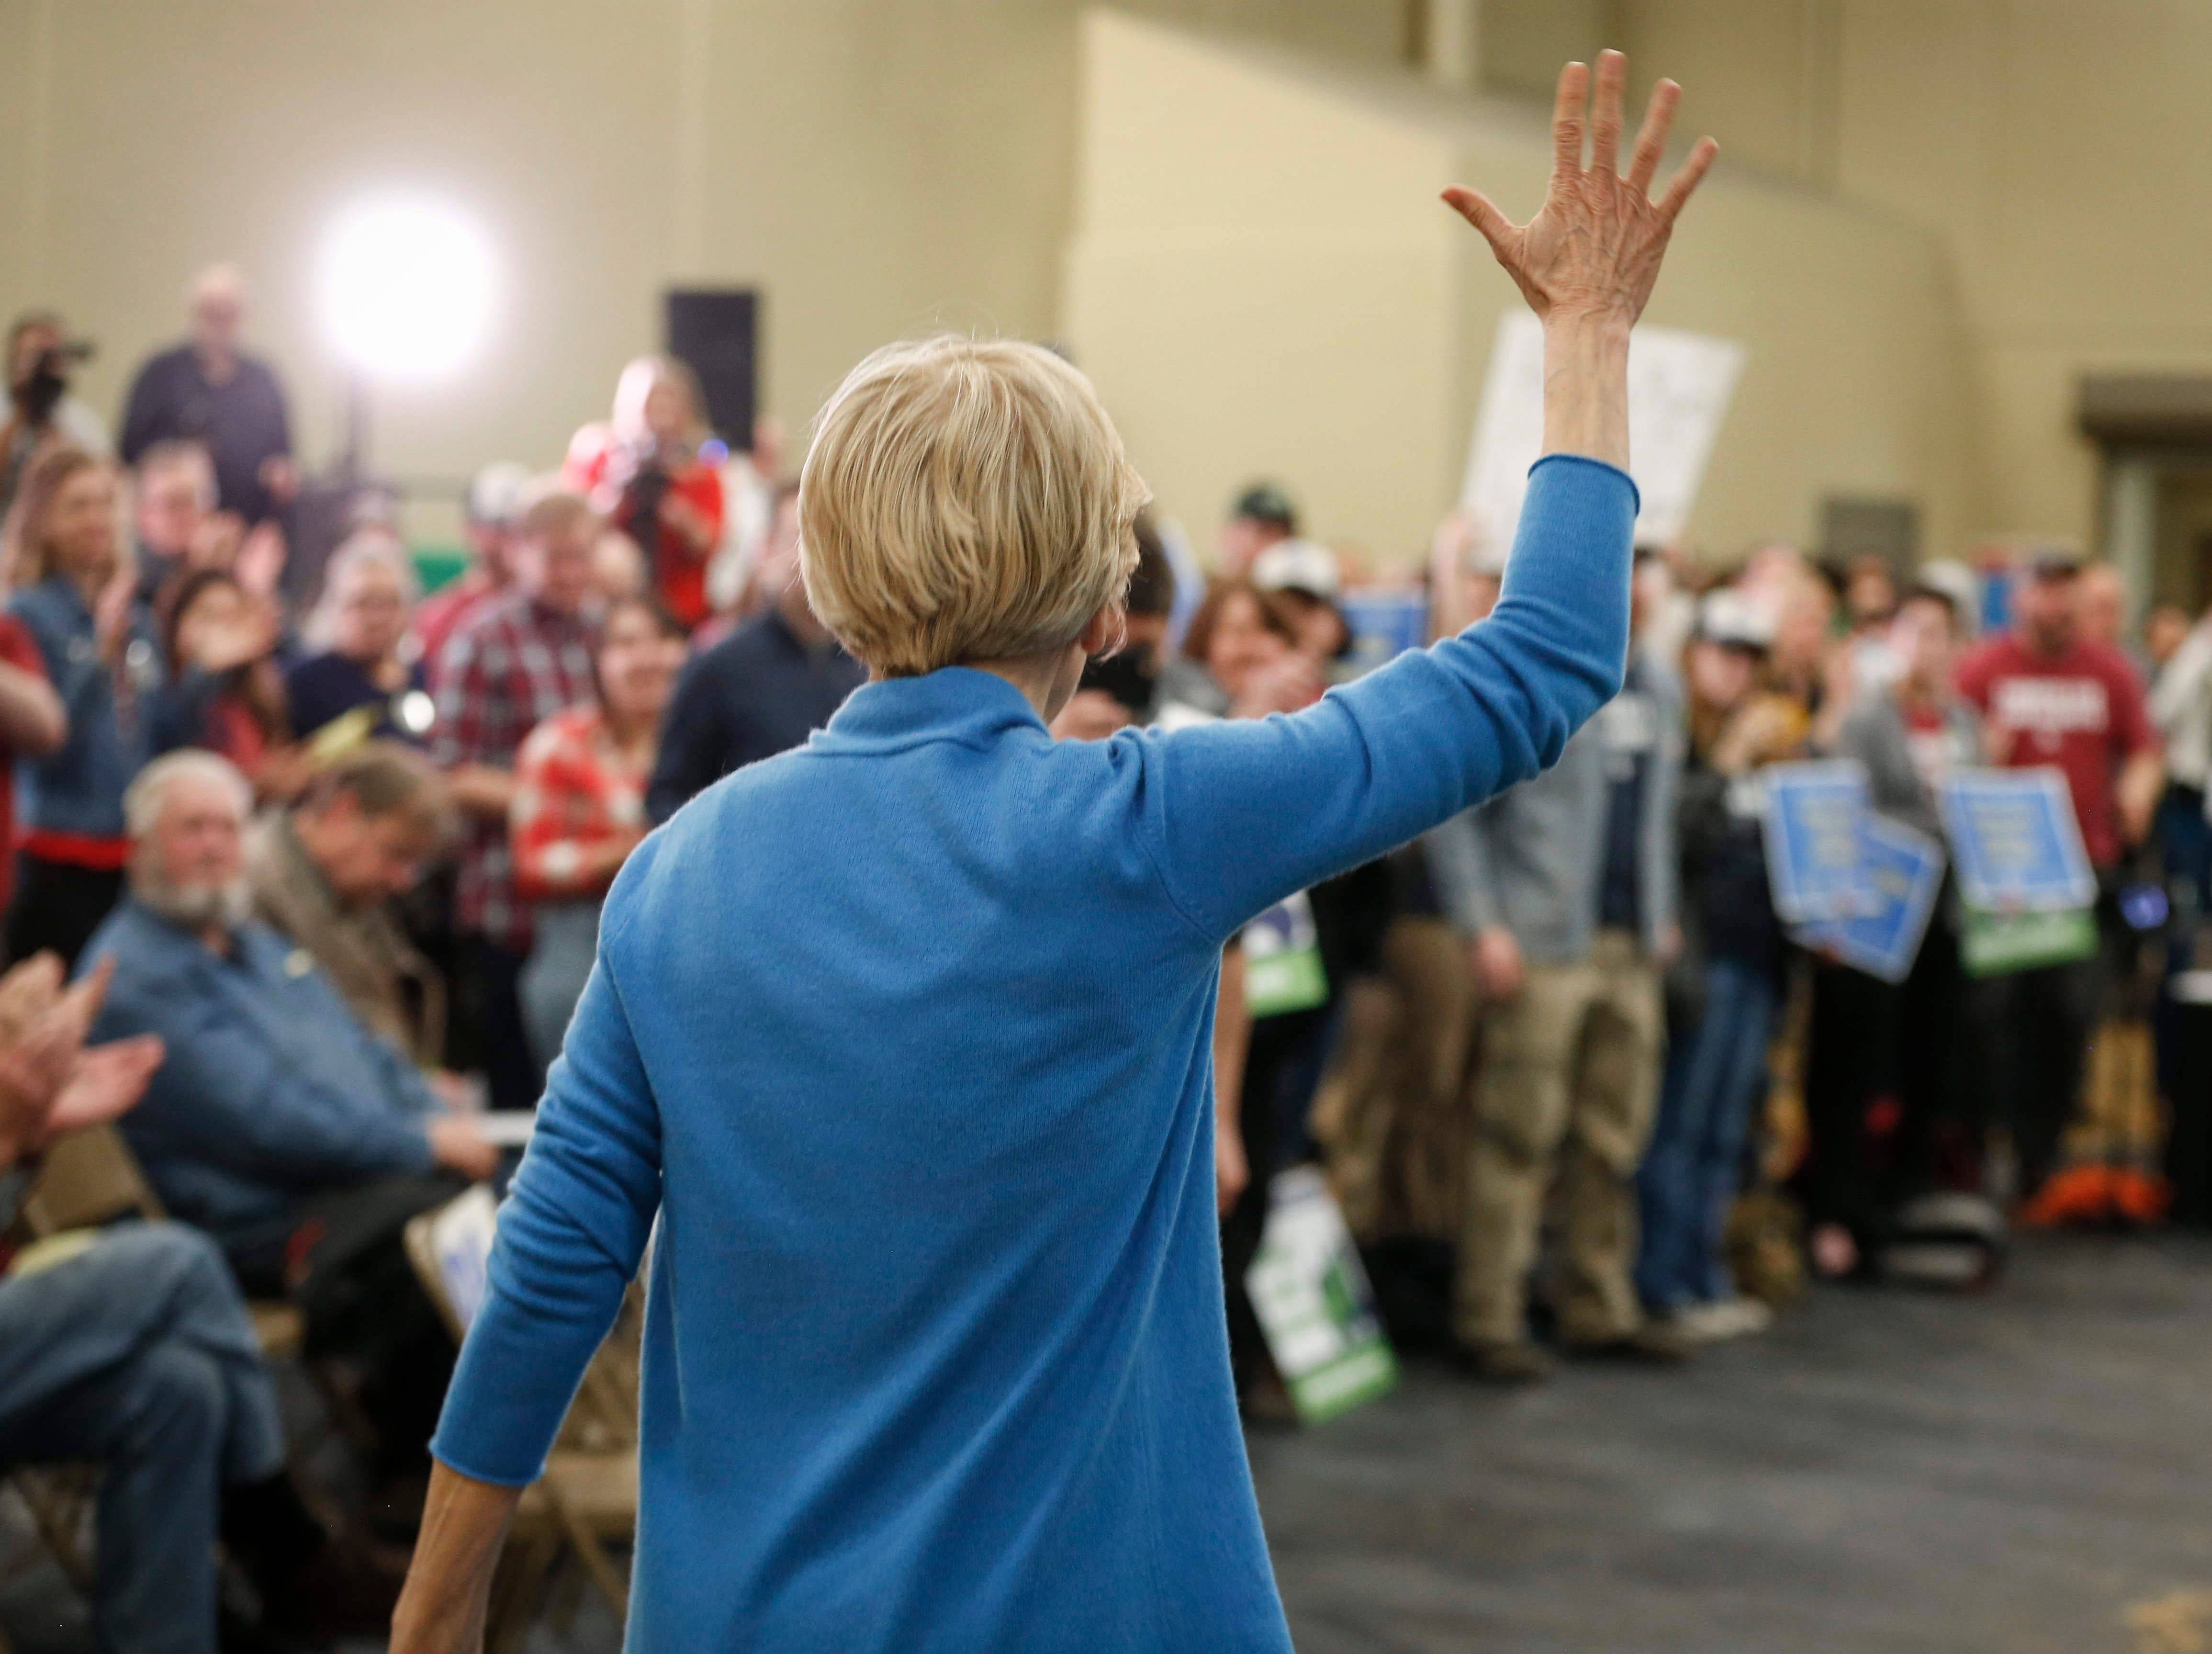 Democratic presidential candidate hopeful Elizabeth Warren greets supporters during the Family Farm Action rally in Storm Lake on March 30, 2019.